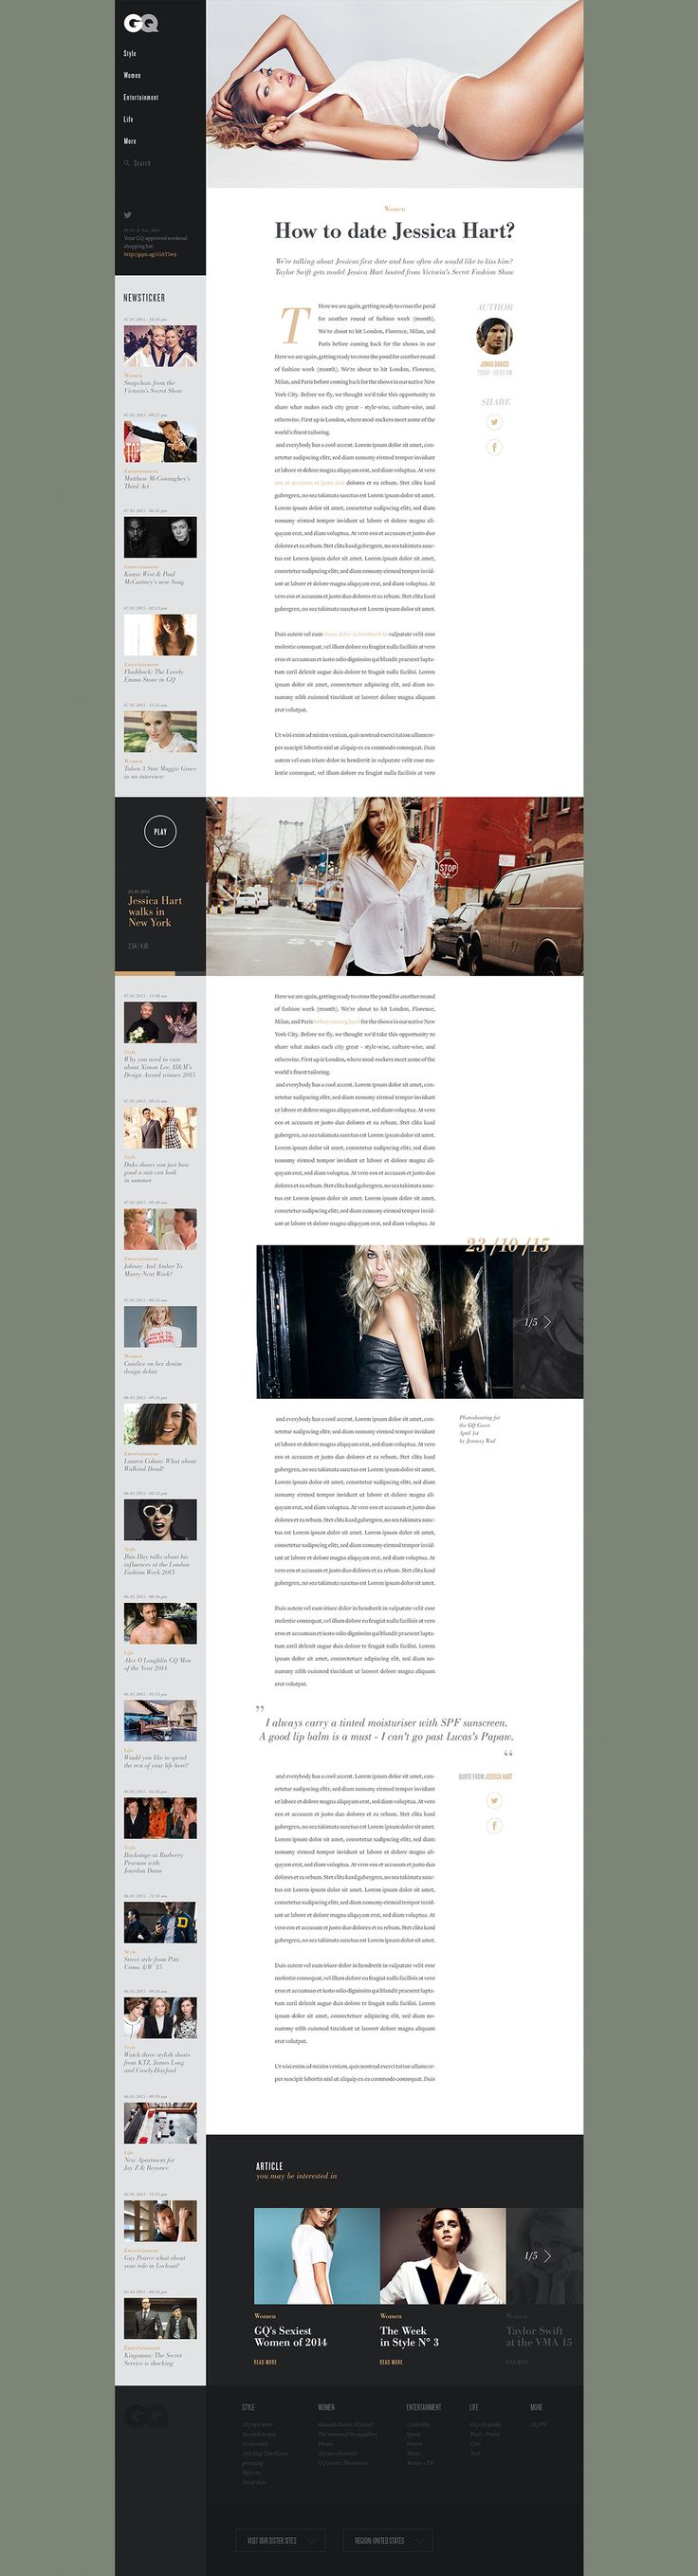 GQ Redesign Concept on Web Design Served